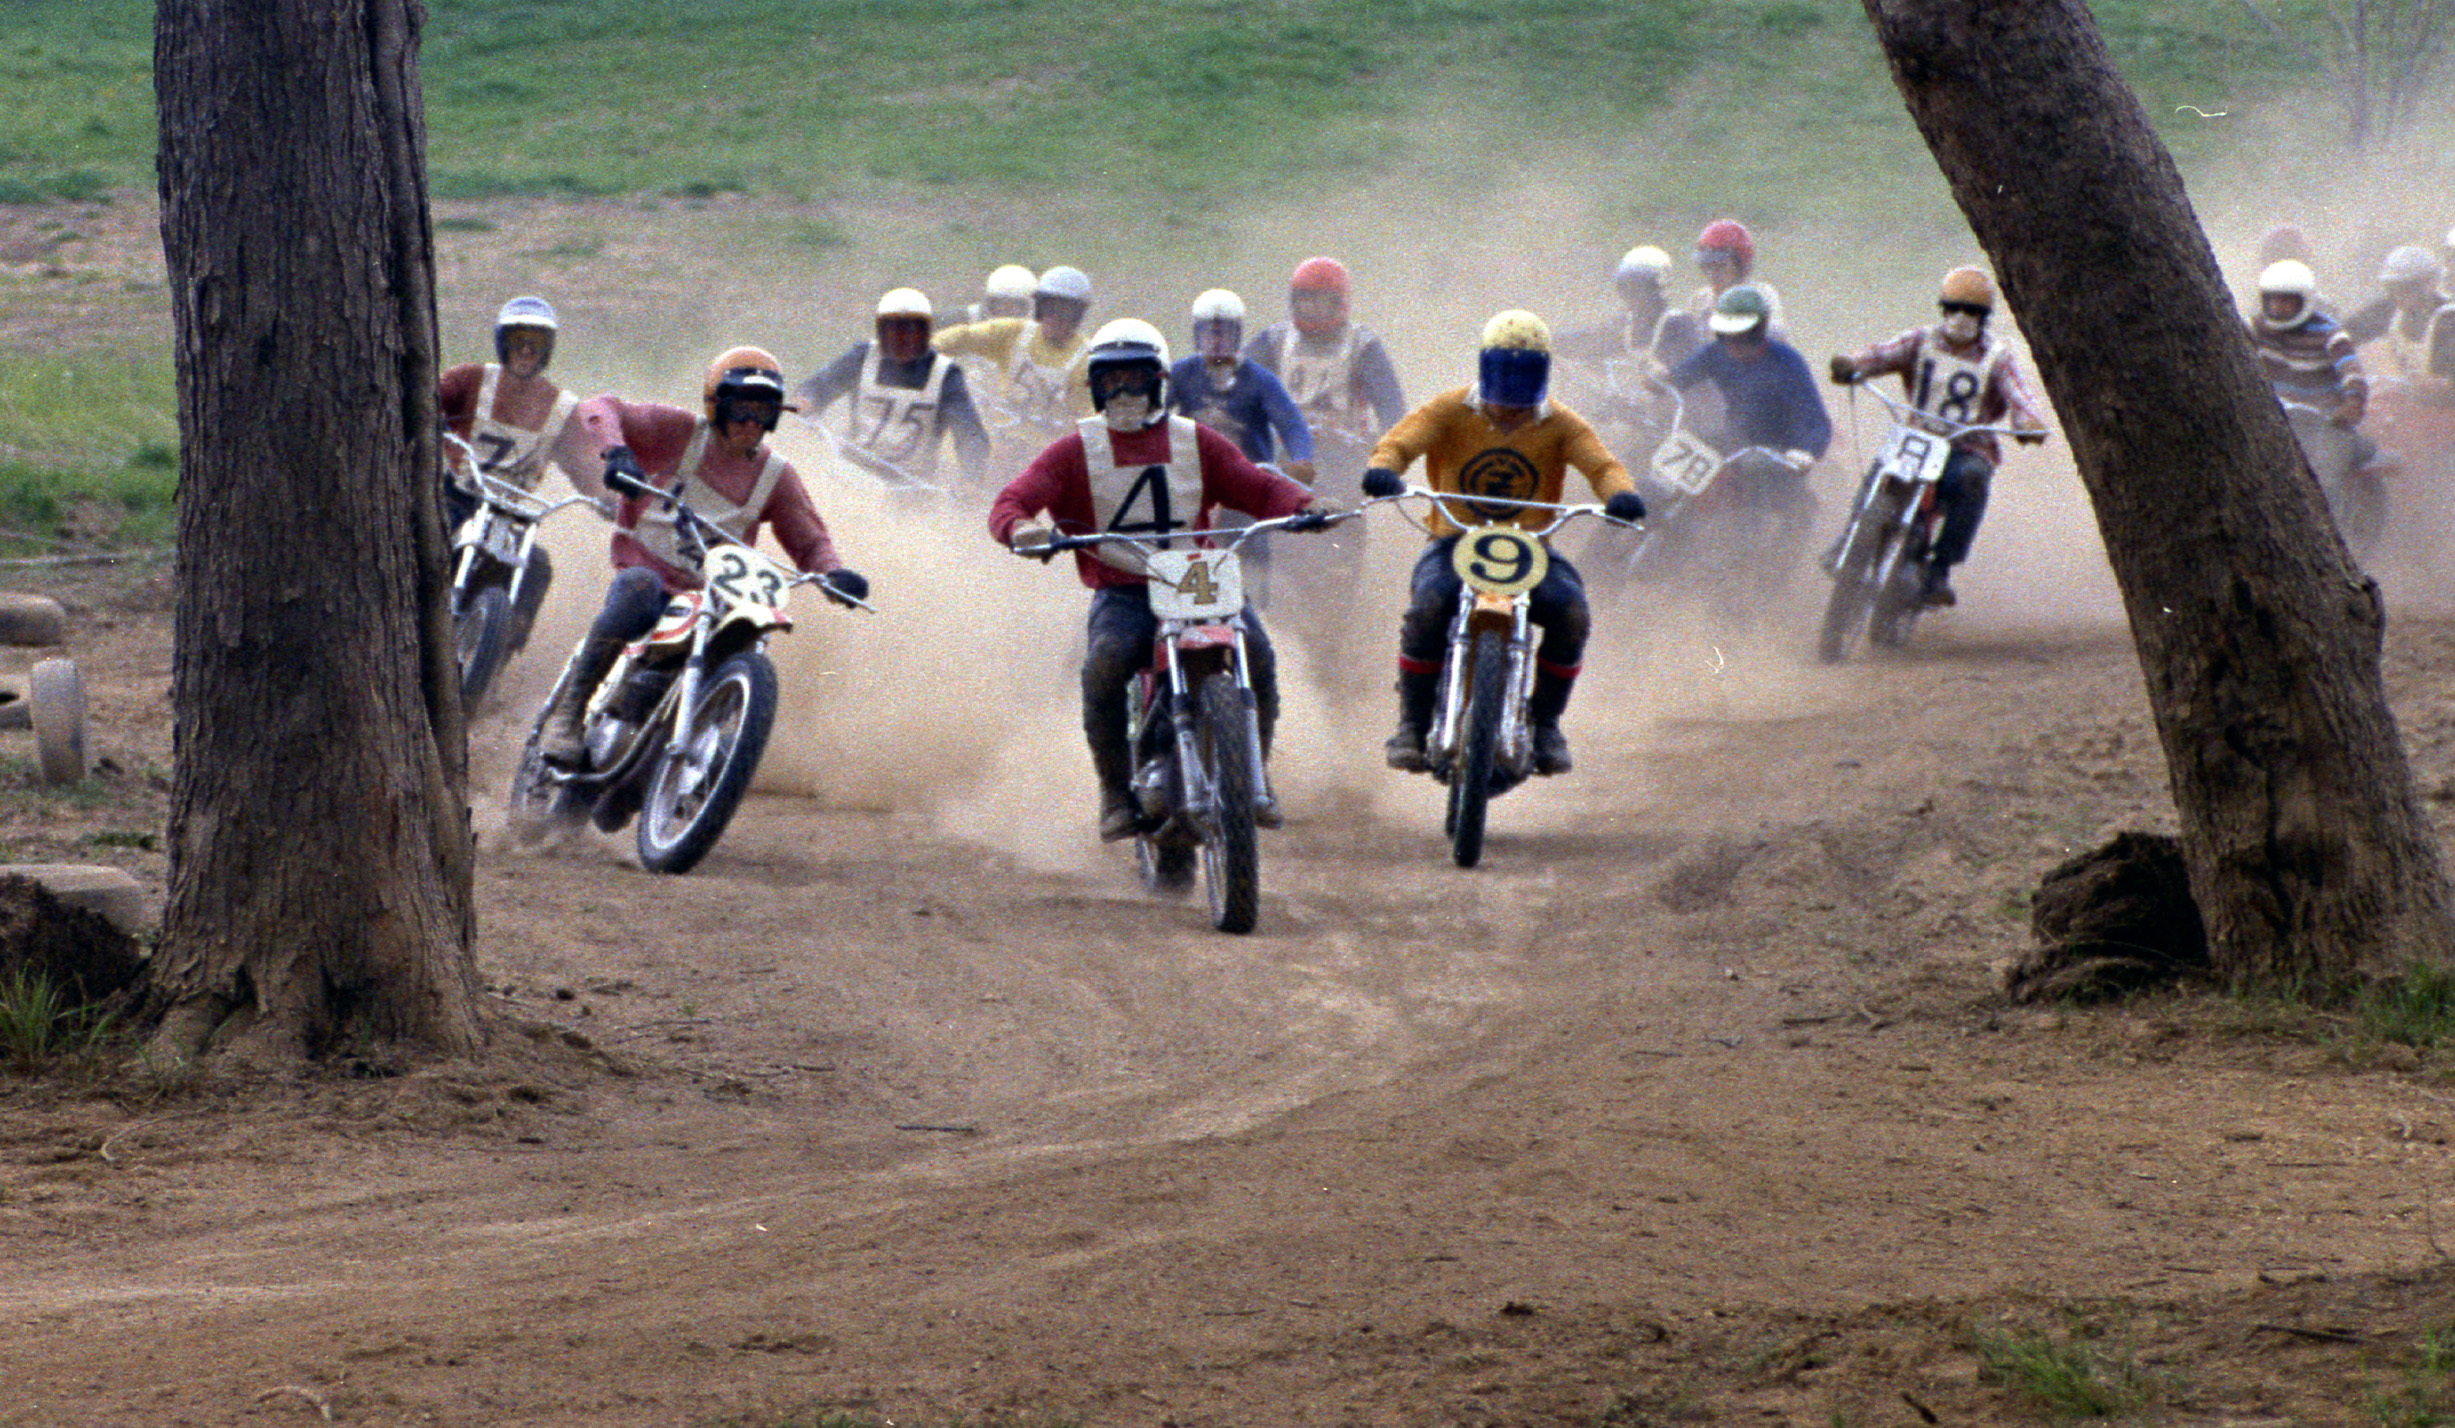 dirt Bikes race vehicles HD Wallpaper